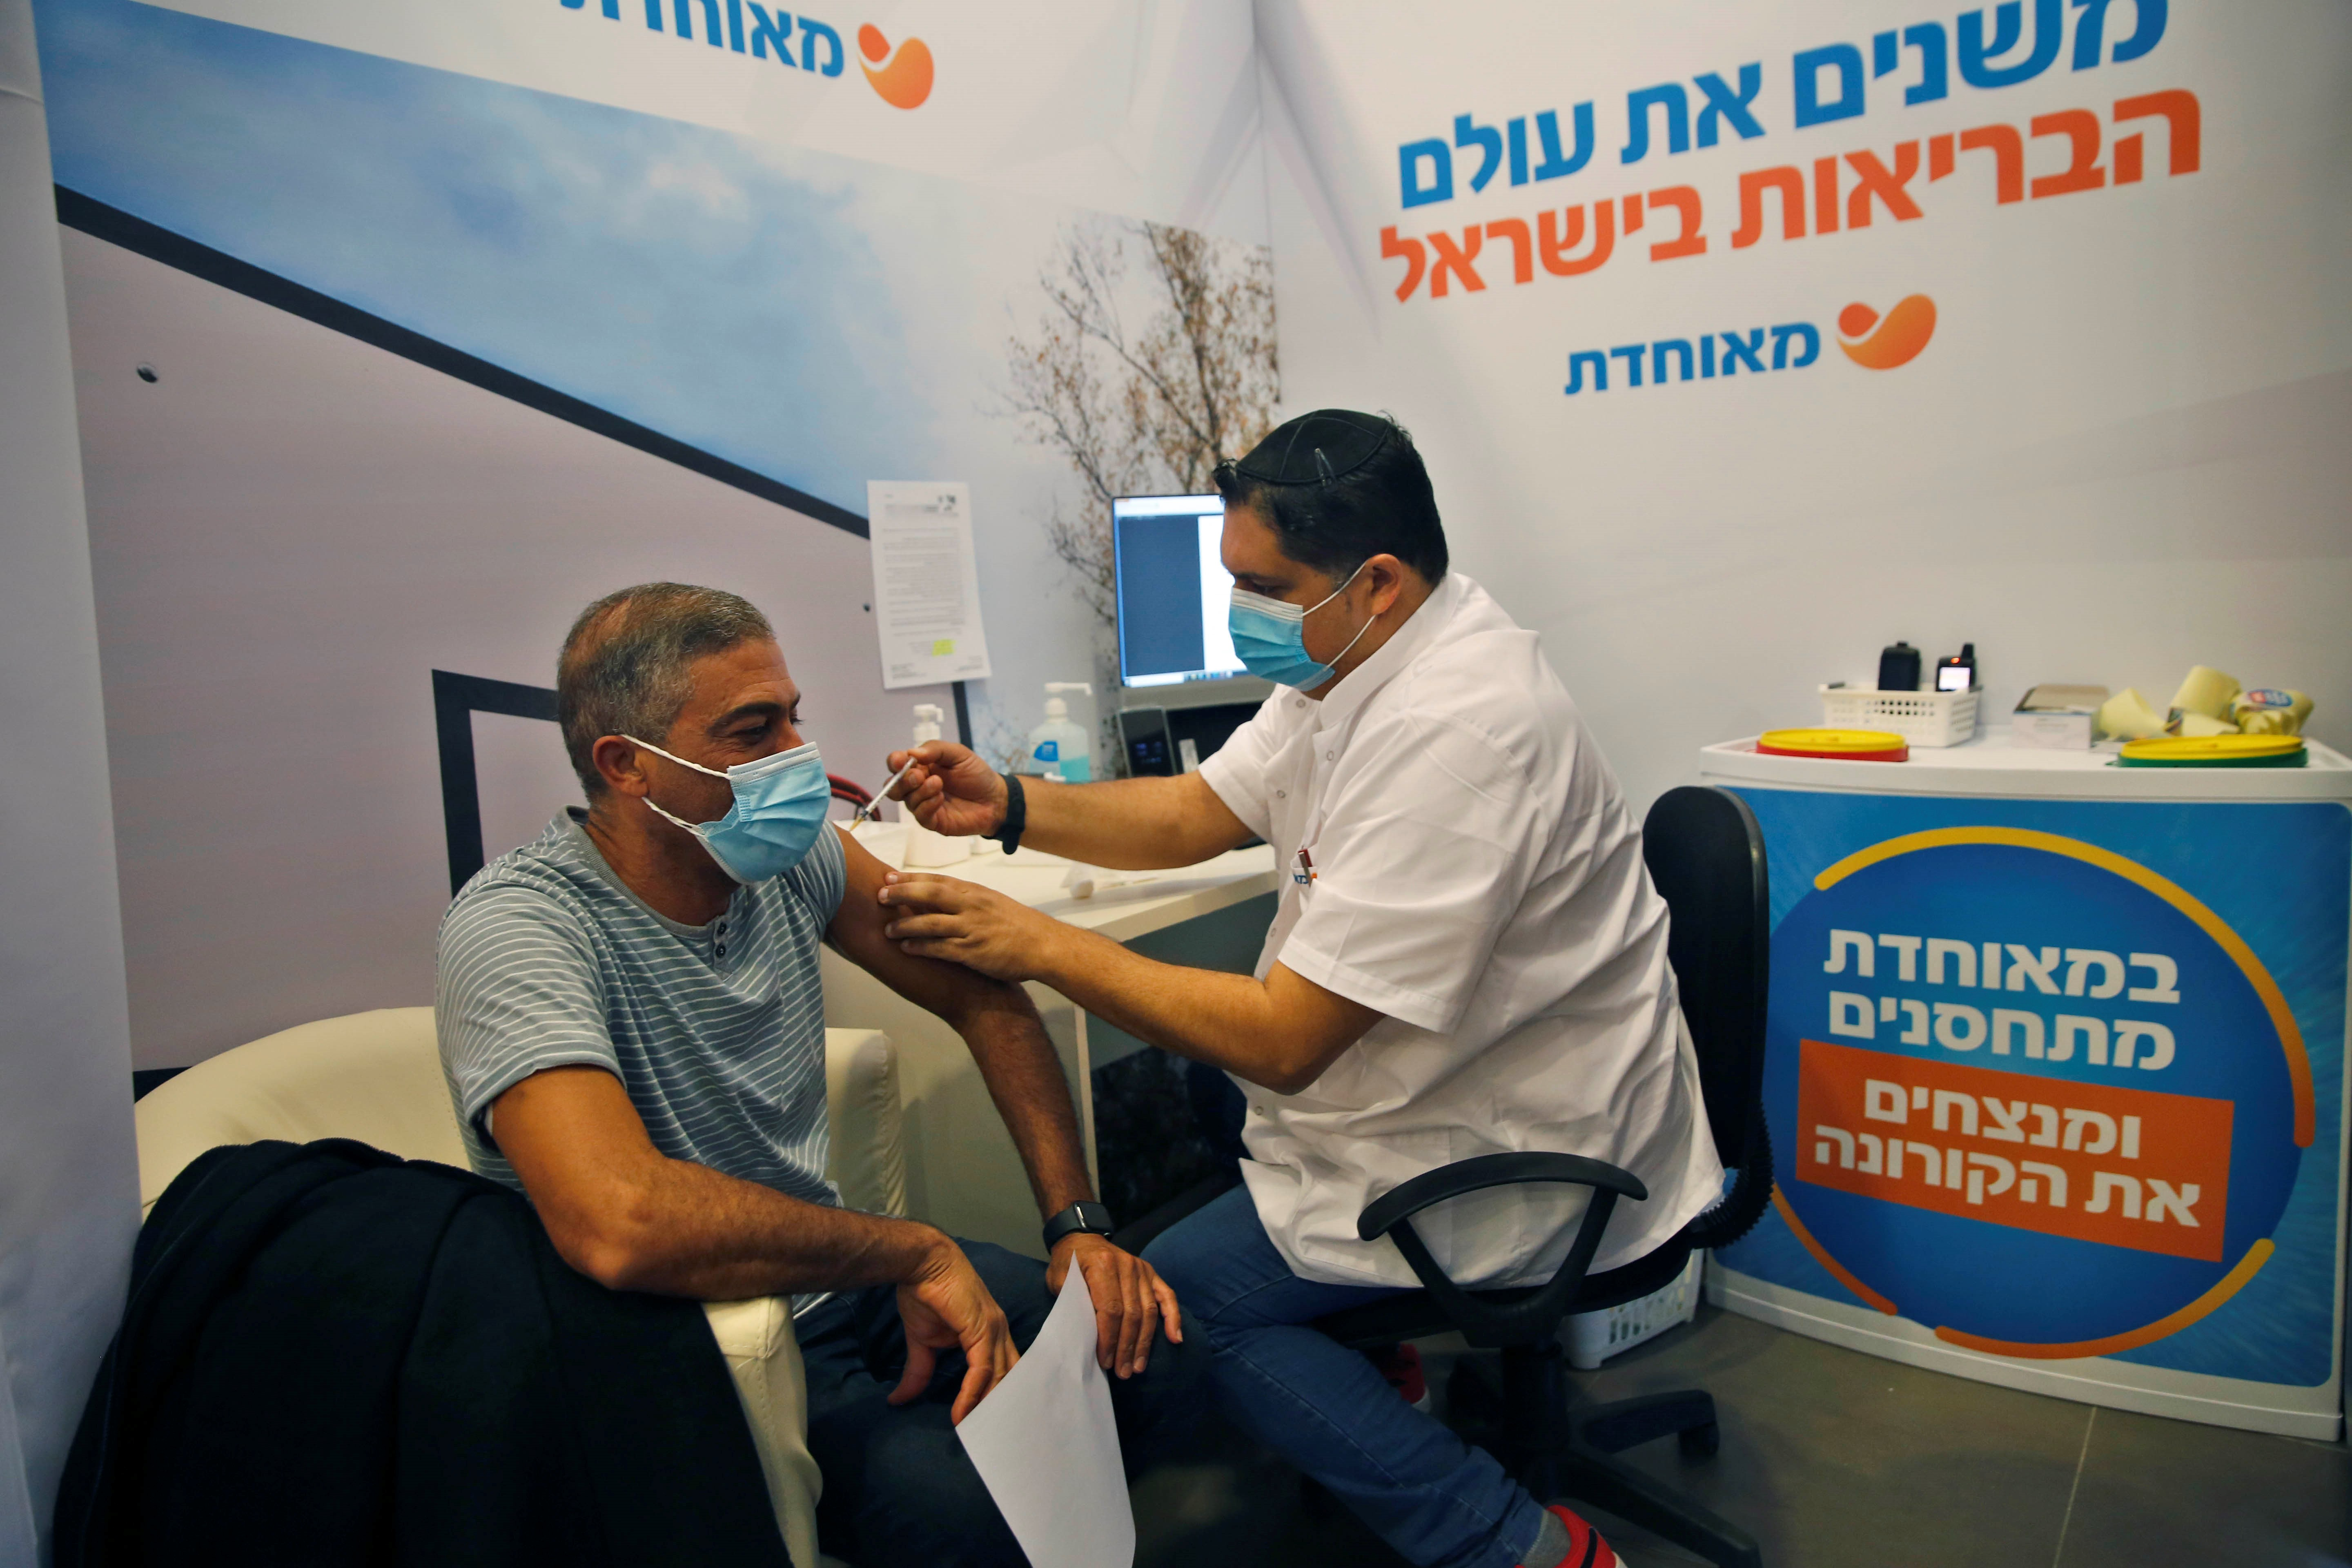 A man receives a COVID-19 vaccine at a health services center in Rehovot, central Israel, on Jan. 14, 2021.